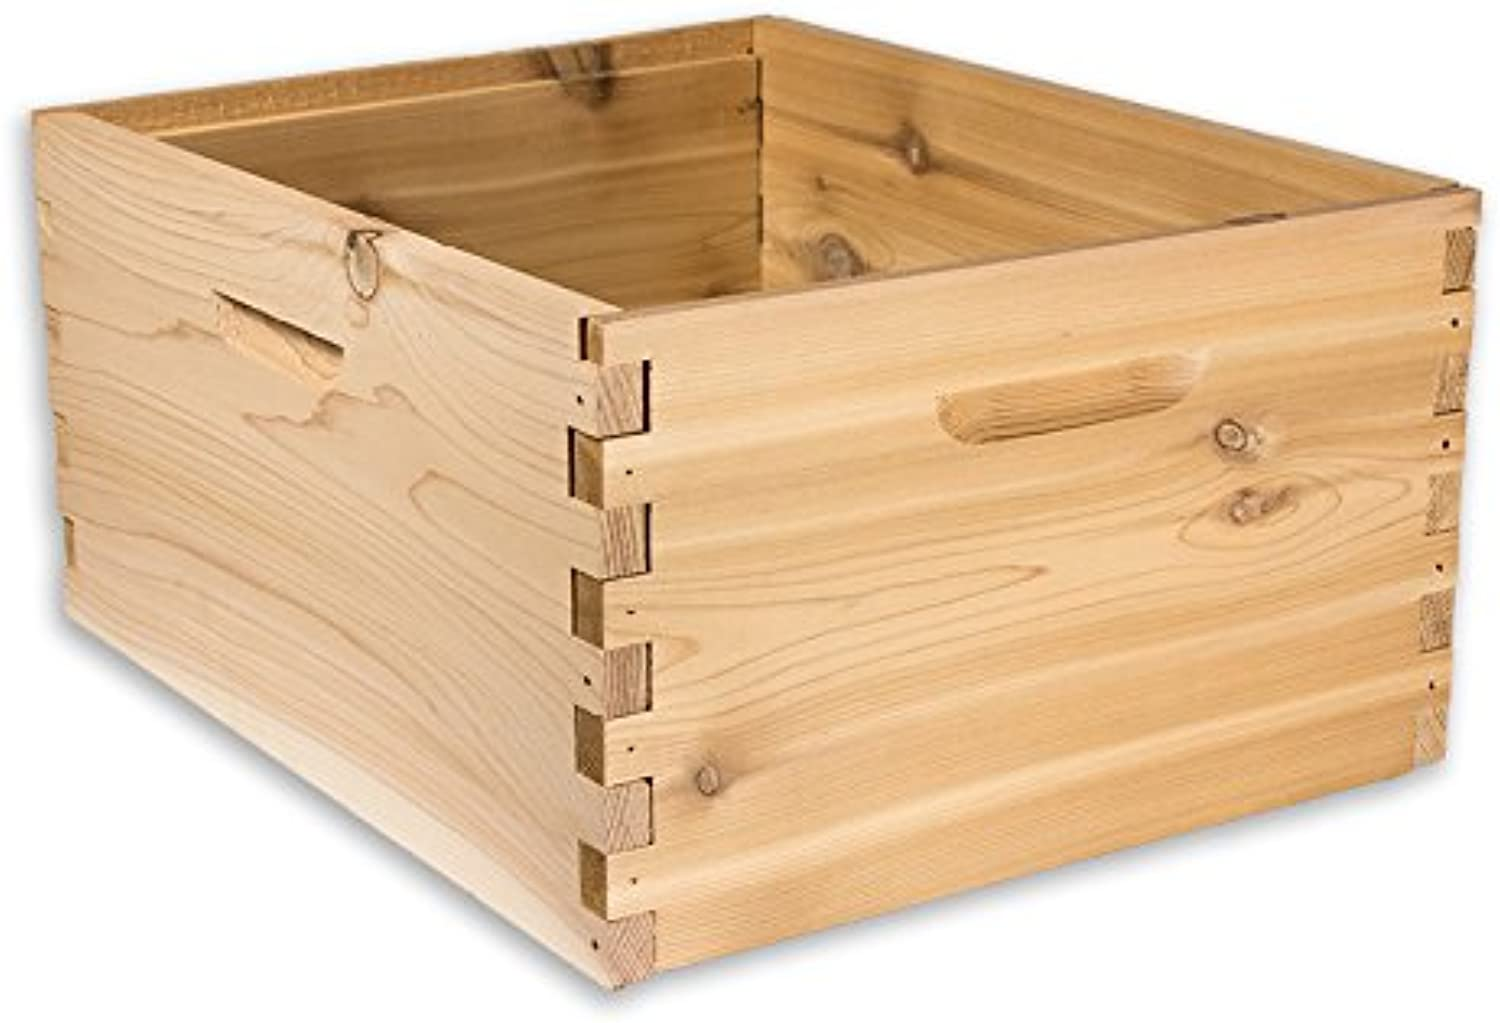 ARBORIA 10 Frame Deep Hive Box Premium Cedar Wood for Langstredh Beekeeping Made in USA, 16 x 19 x 9 Inches